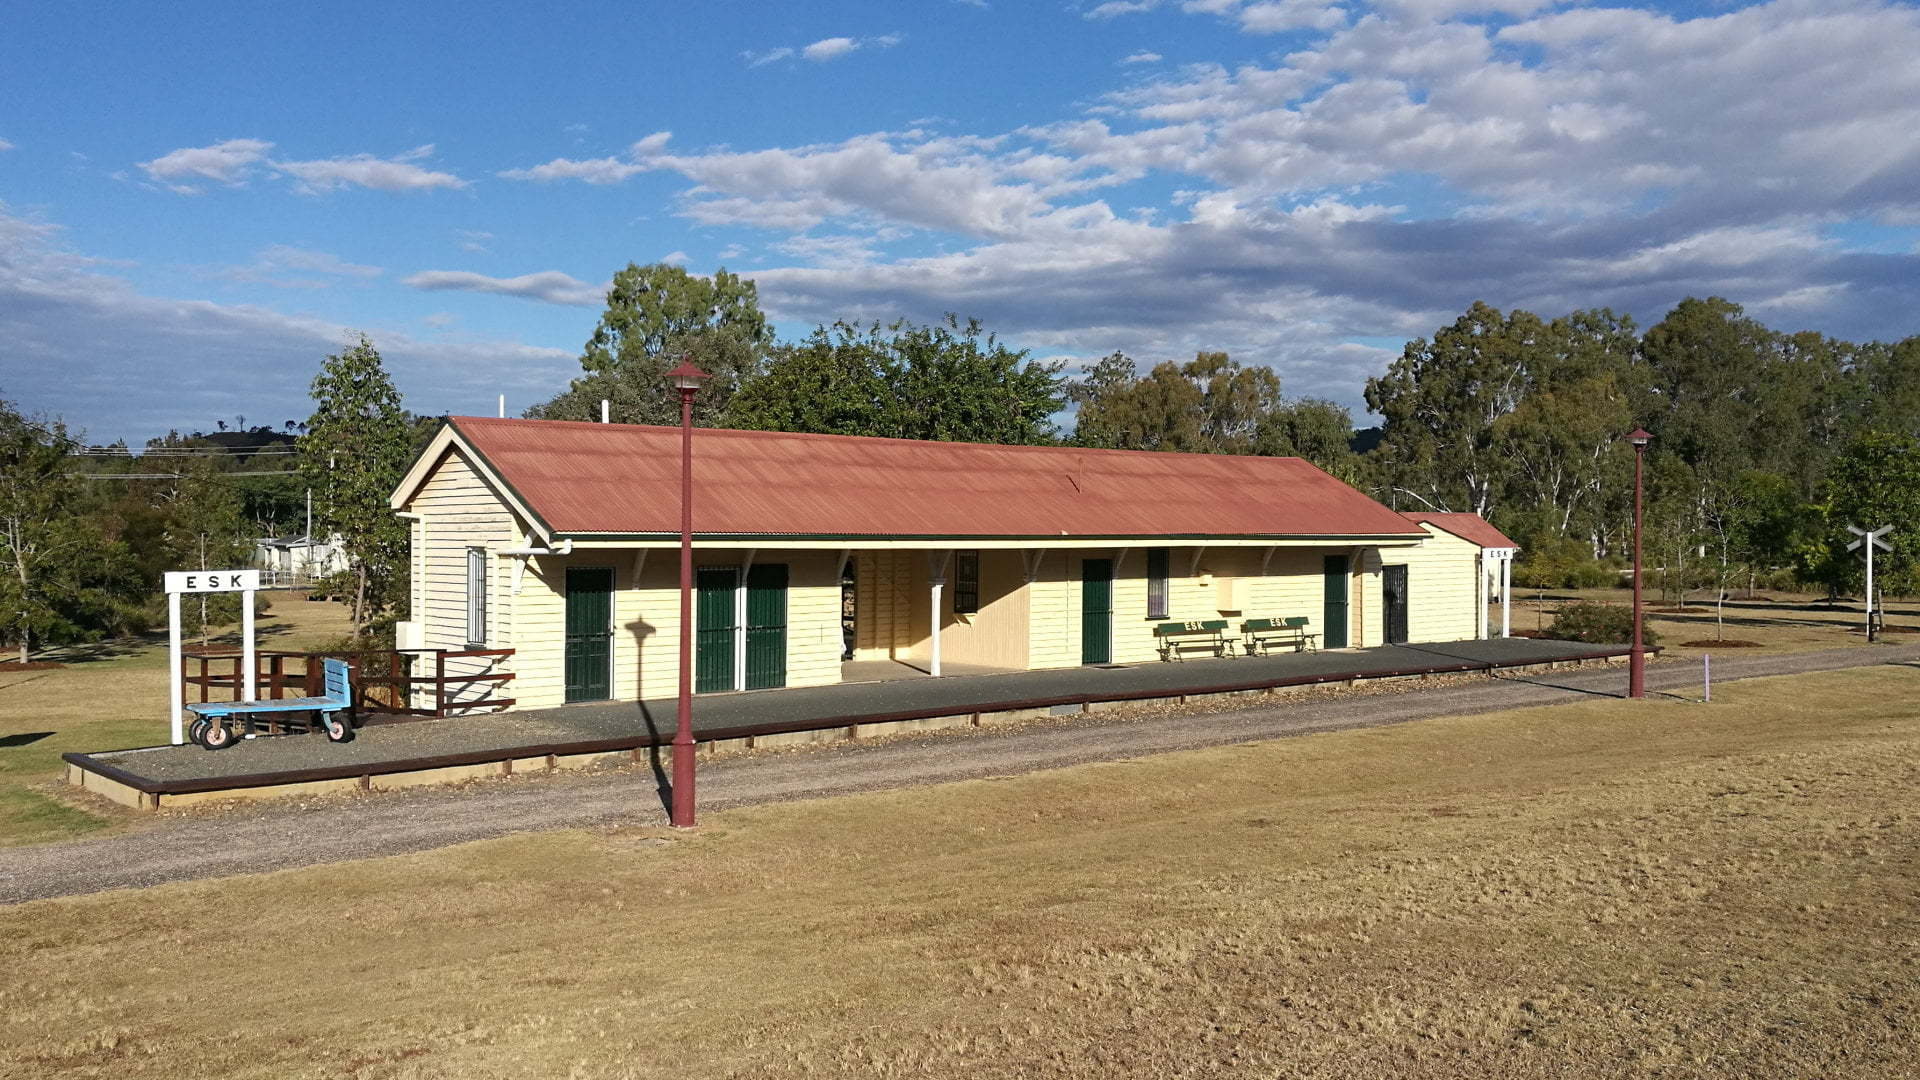 The old Esk railway station on the Brisbane Valley Rail Trail. The trail from Esk leads to Lowood to the south, and to Toogoolawah to the north